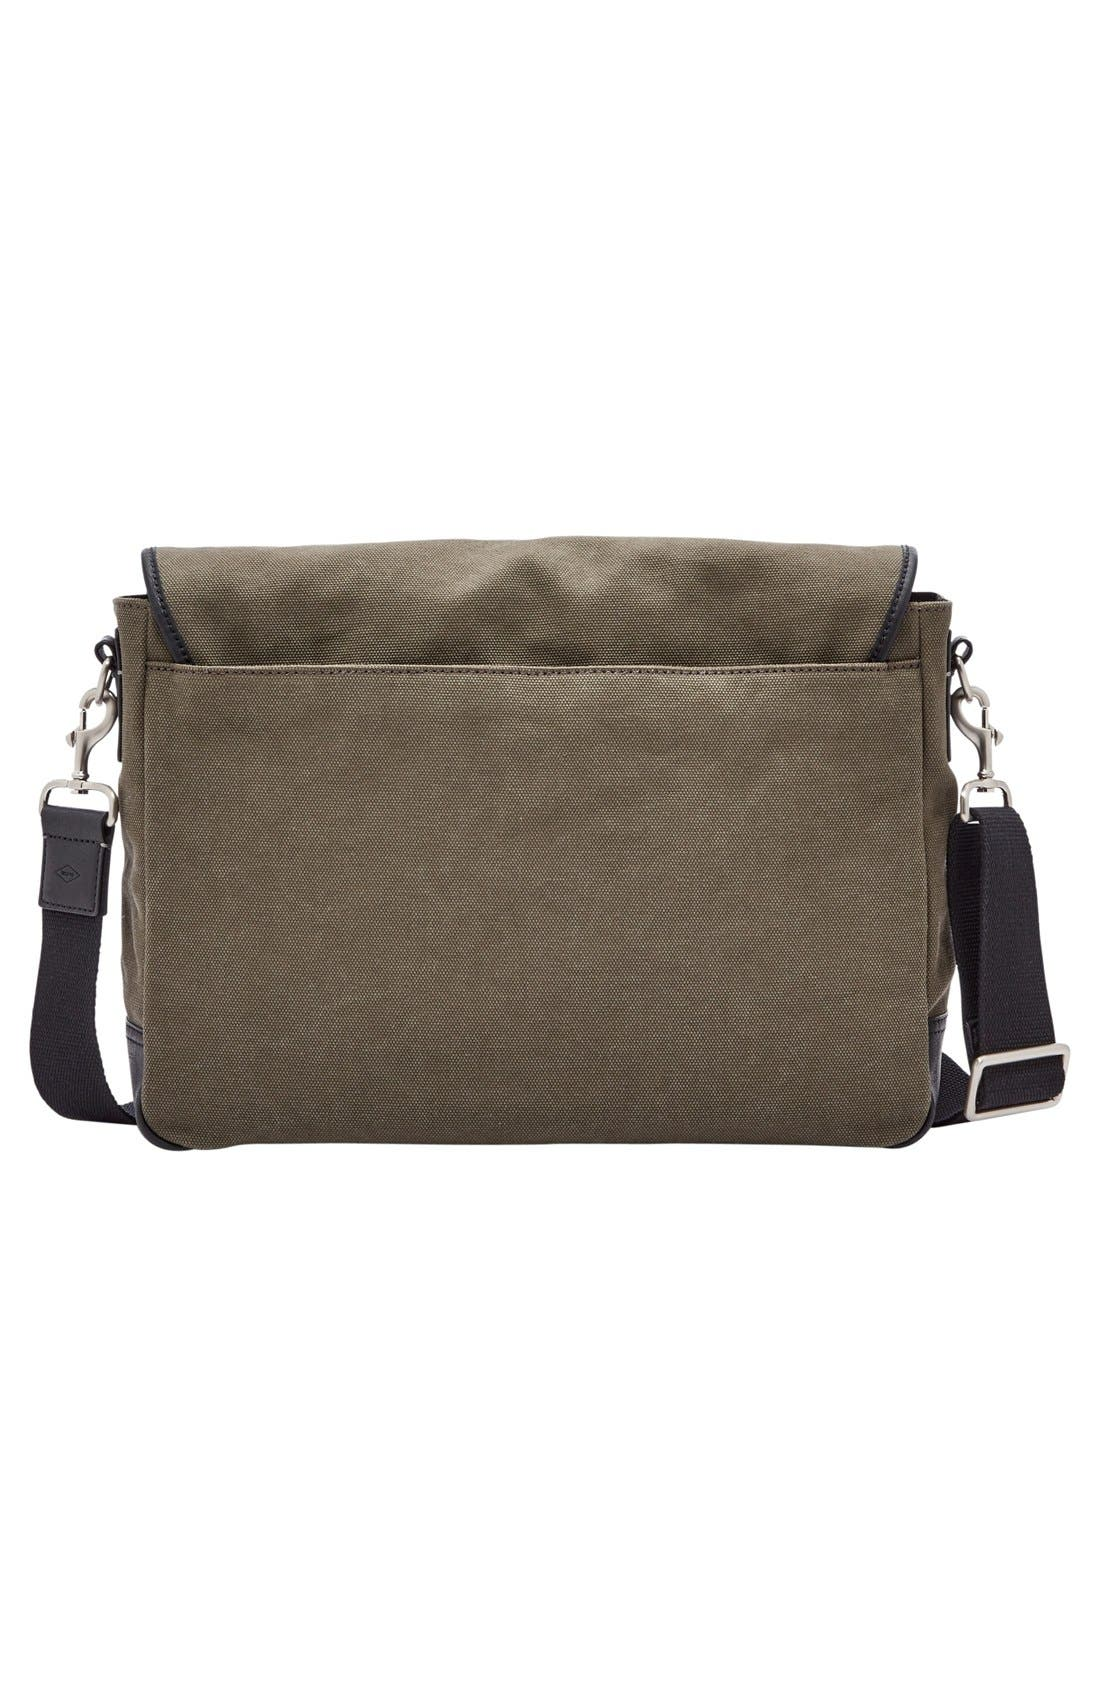 'Graham' Canvas Messenger Bag,                             Alternate thumbnail 2, color,                             345